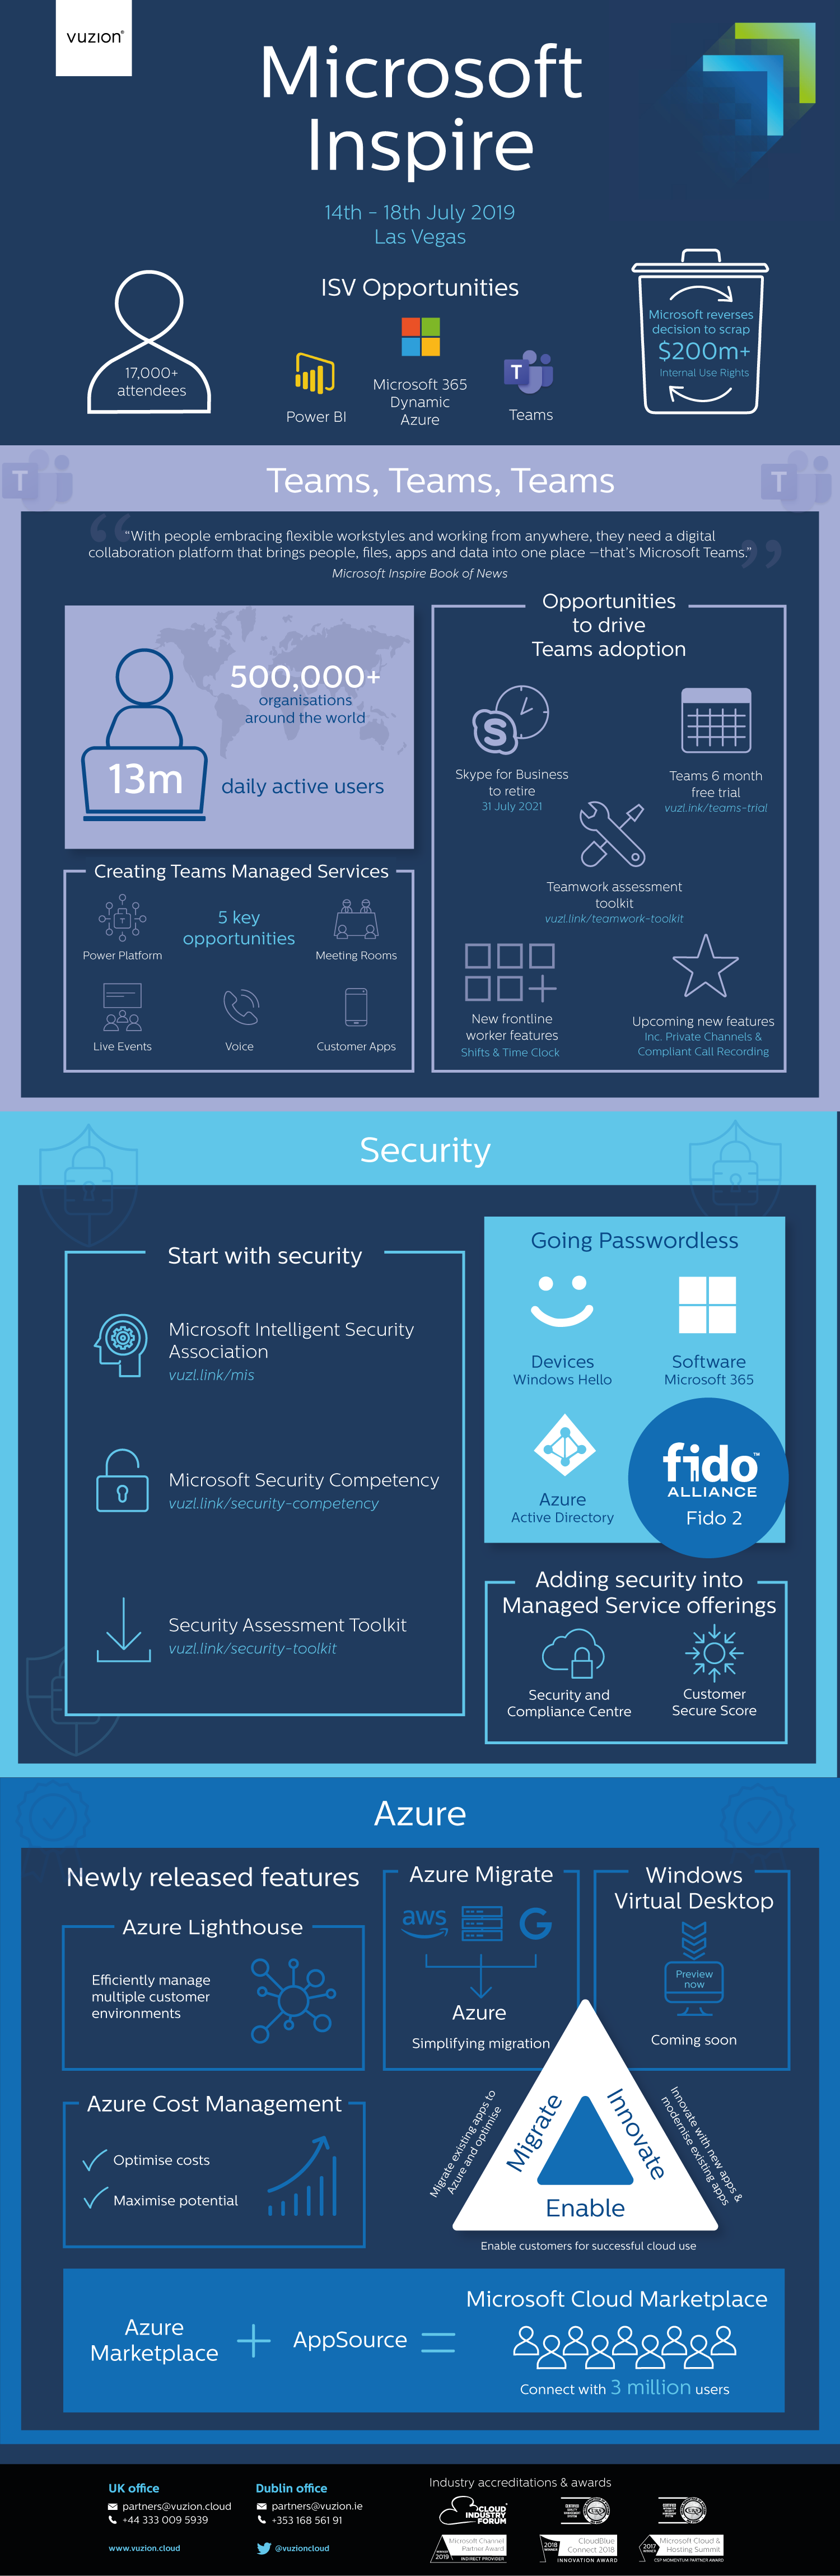 Inspire 2019 infographic key learnings